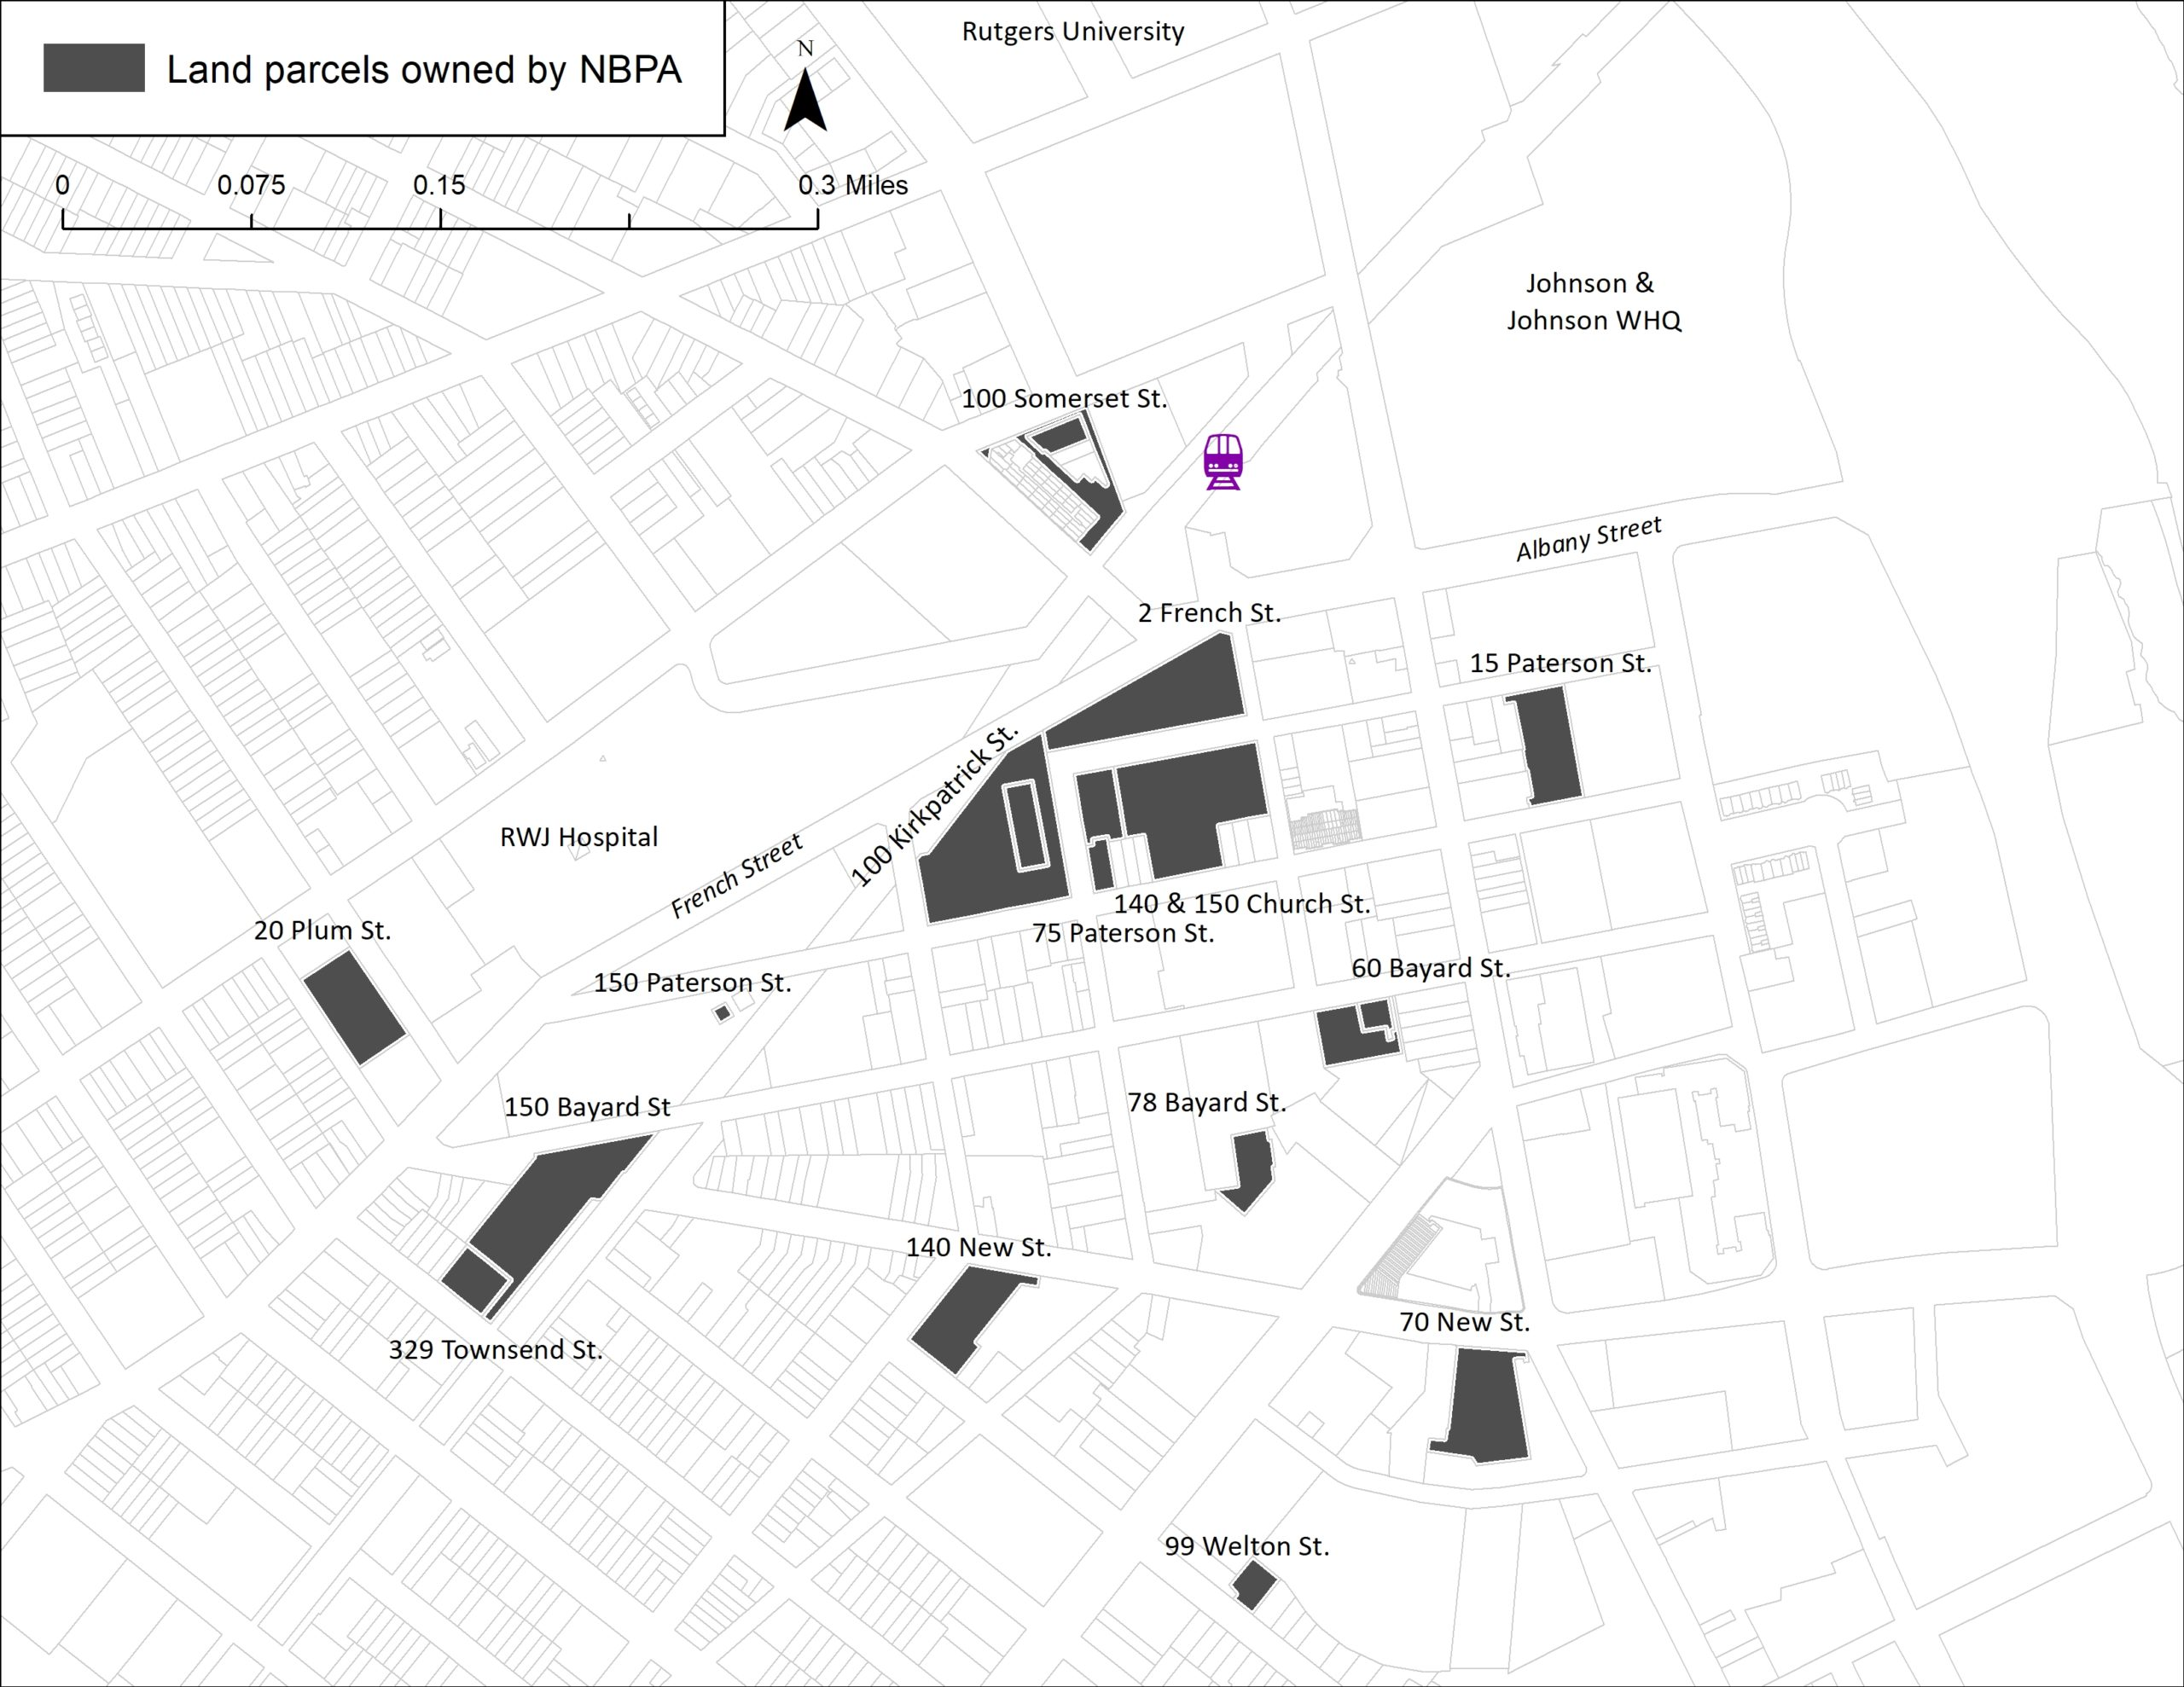 map of land parcels owned by New Jersey Parking Authority in New Brunswick, NJ